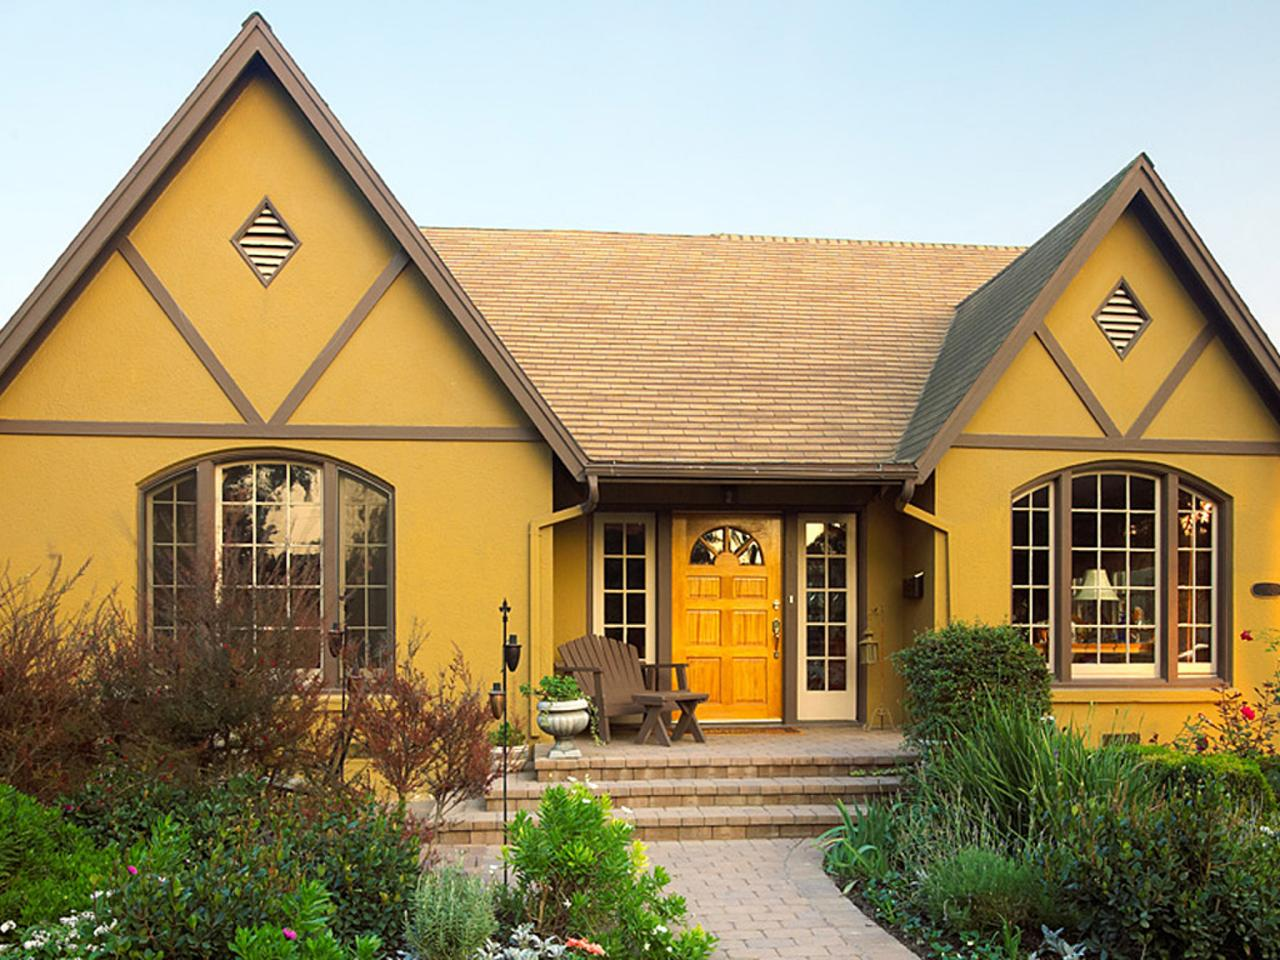 20 inviting home exterior color ideas outdoor design Which color is best for home